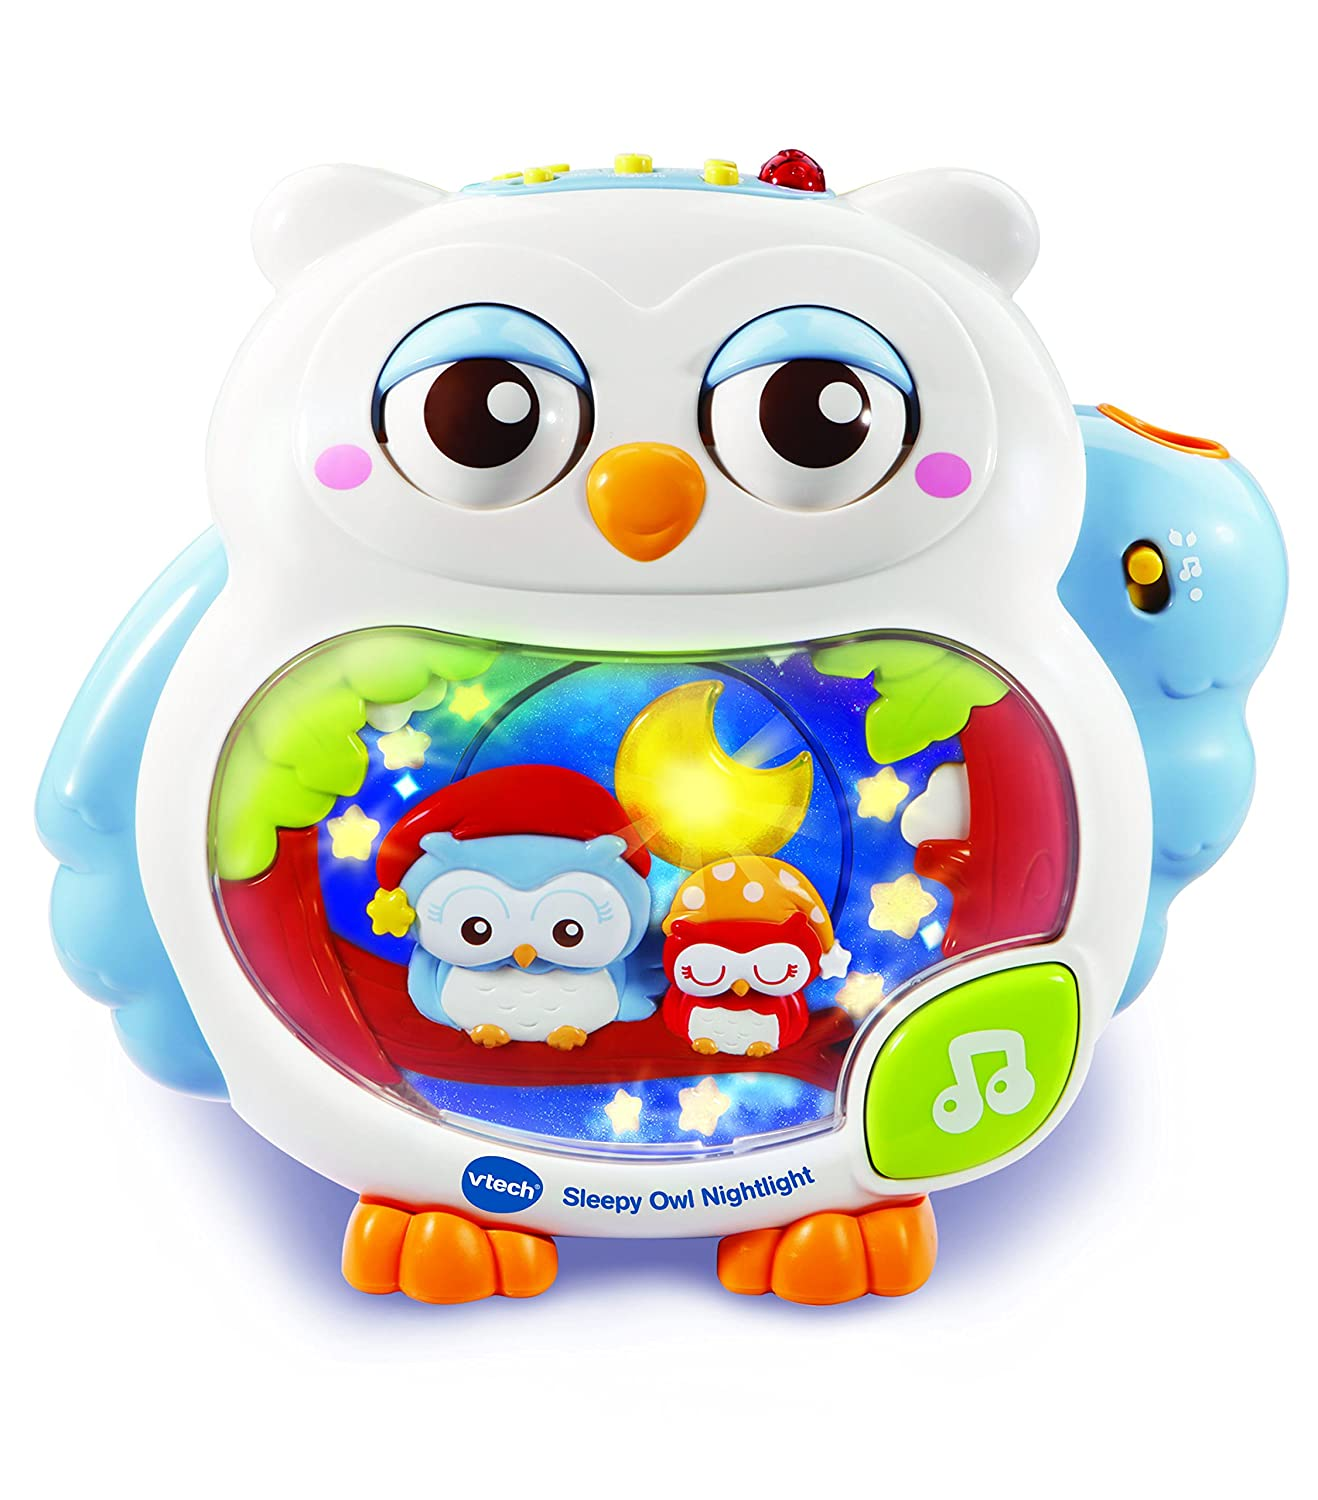 Vtech Sleepy Owl Nightlight VTech Baby Amazon Toys